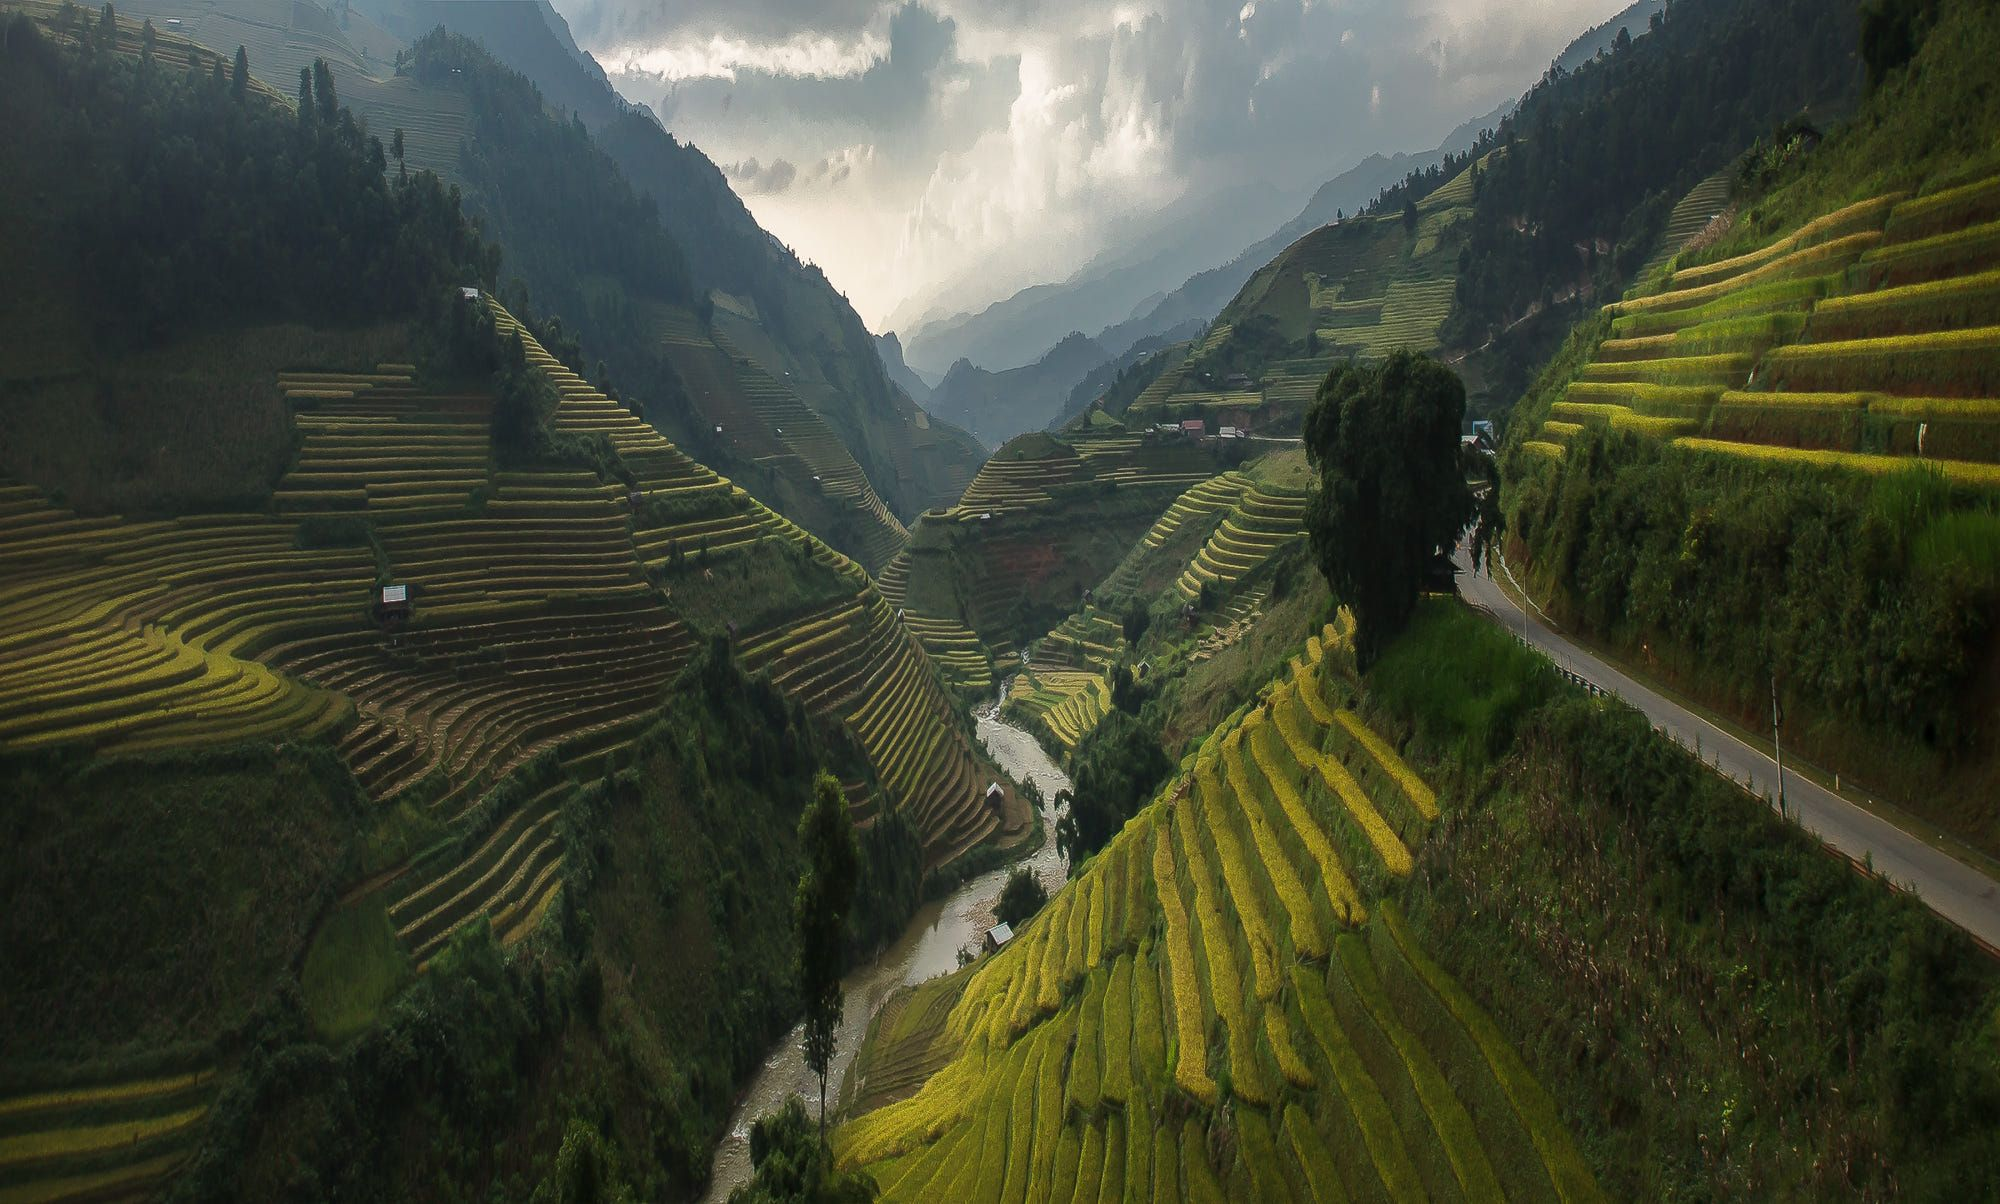 The most fascinated passes in Northern Vietnam for